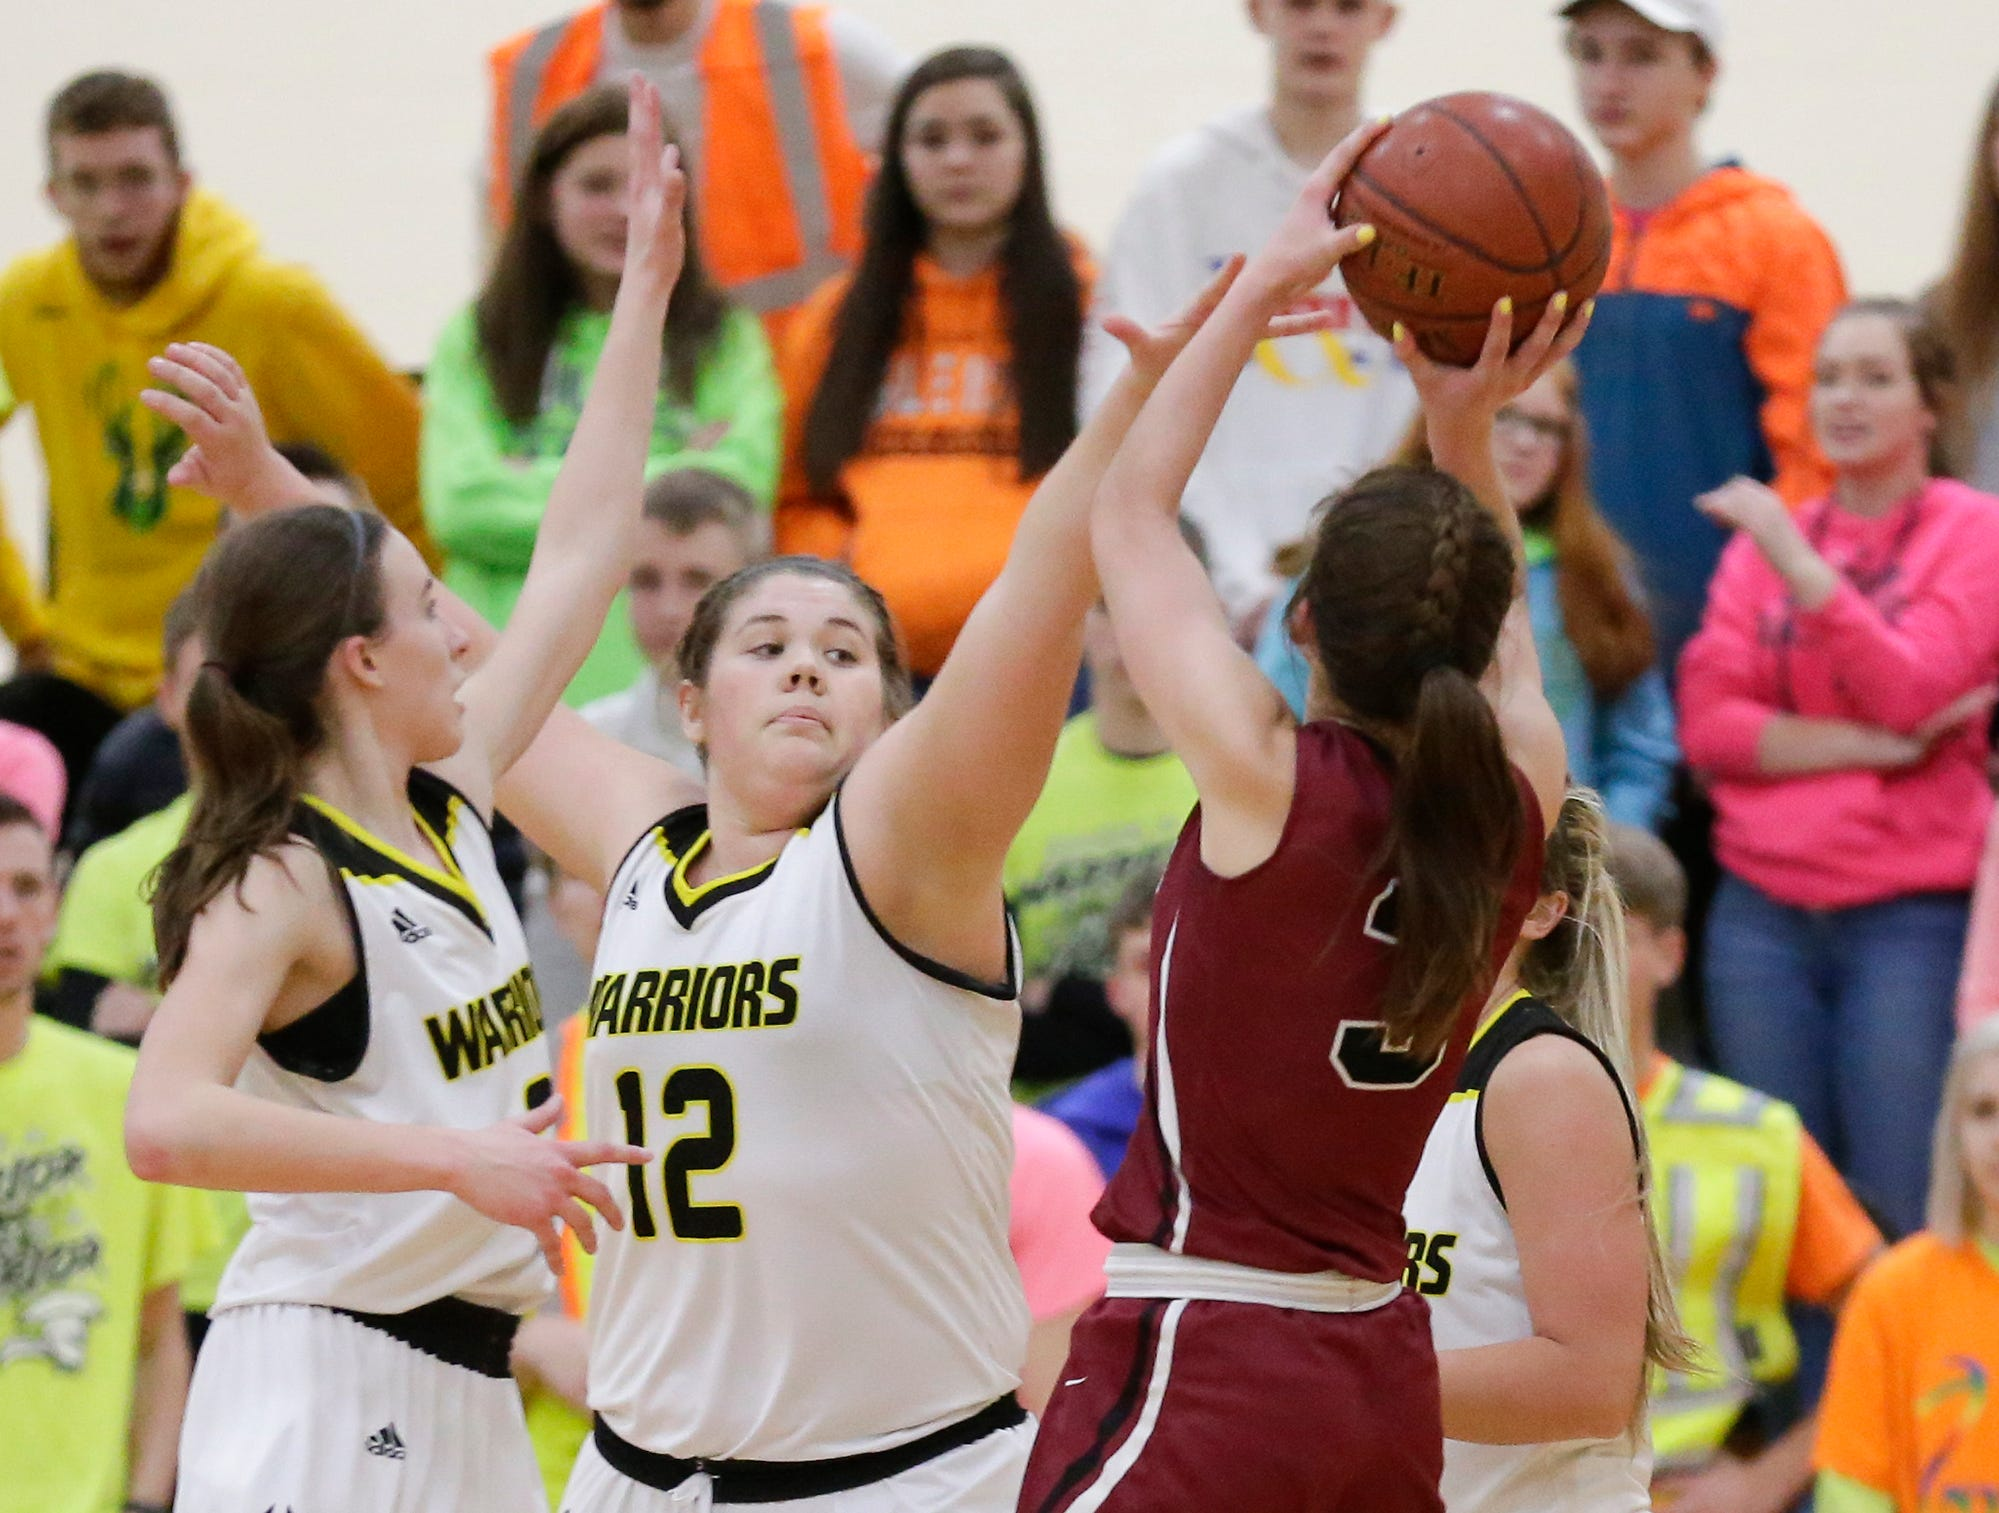 Mayville High School girls basketball's Amber Schraufnagel is defended by Waupun High School's Abbie Aalsma (3) and Kelli Bonack (12) Saturday, February 23, 2019 during their WIAA Division 4 sectional quarterfinal game in Waupun. Waupun won the game 62-45. Doug Raflik/USA TODAY NETWORK-Wisconsin